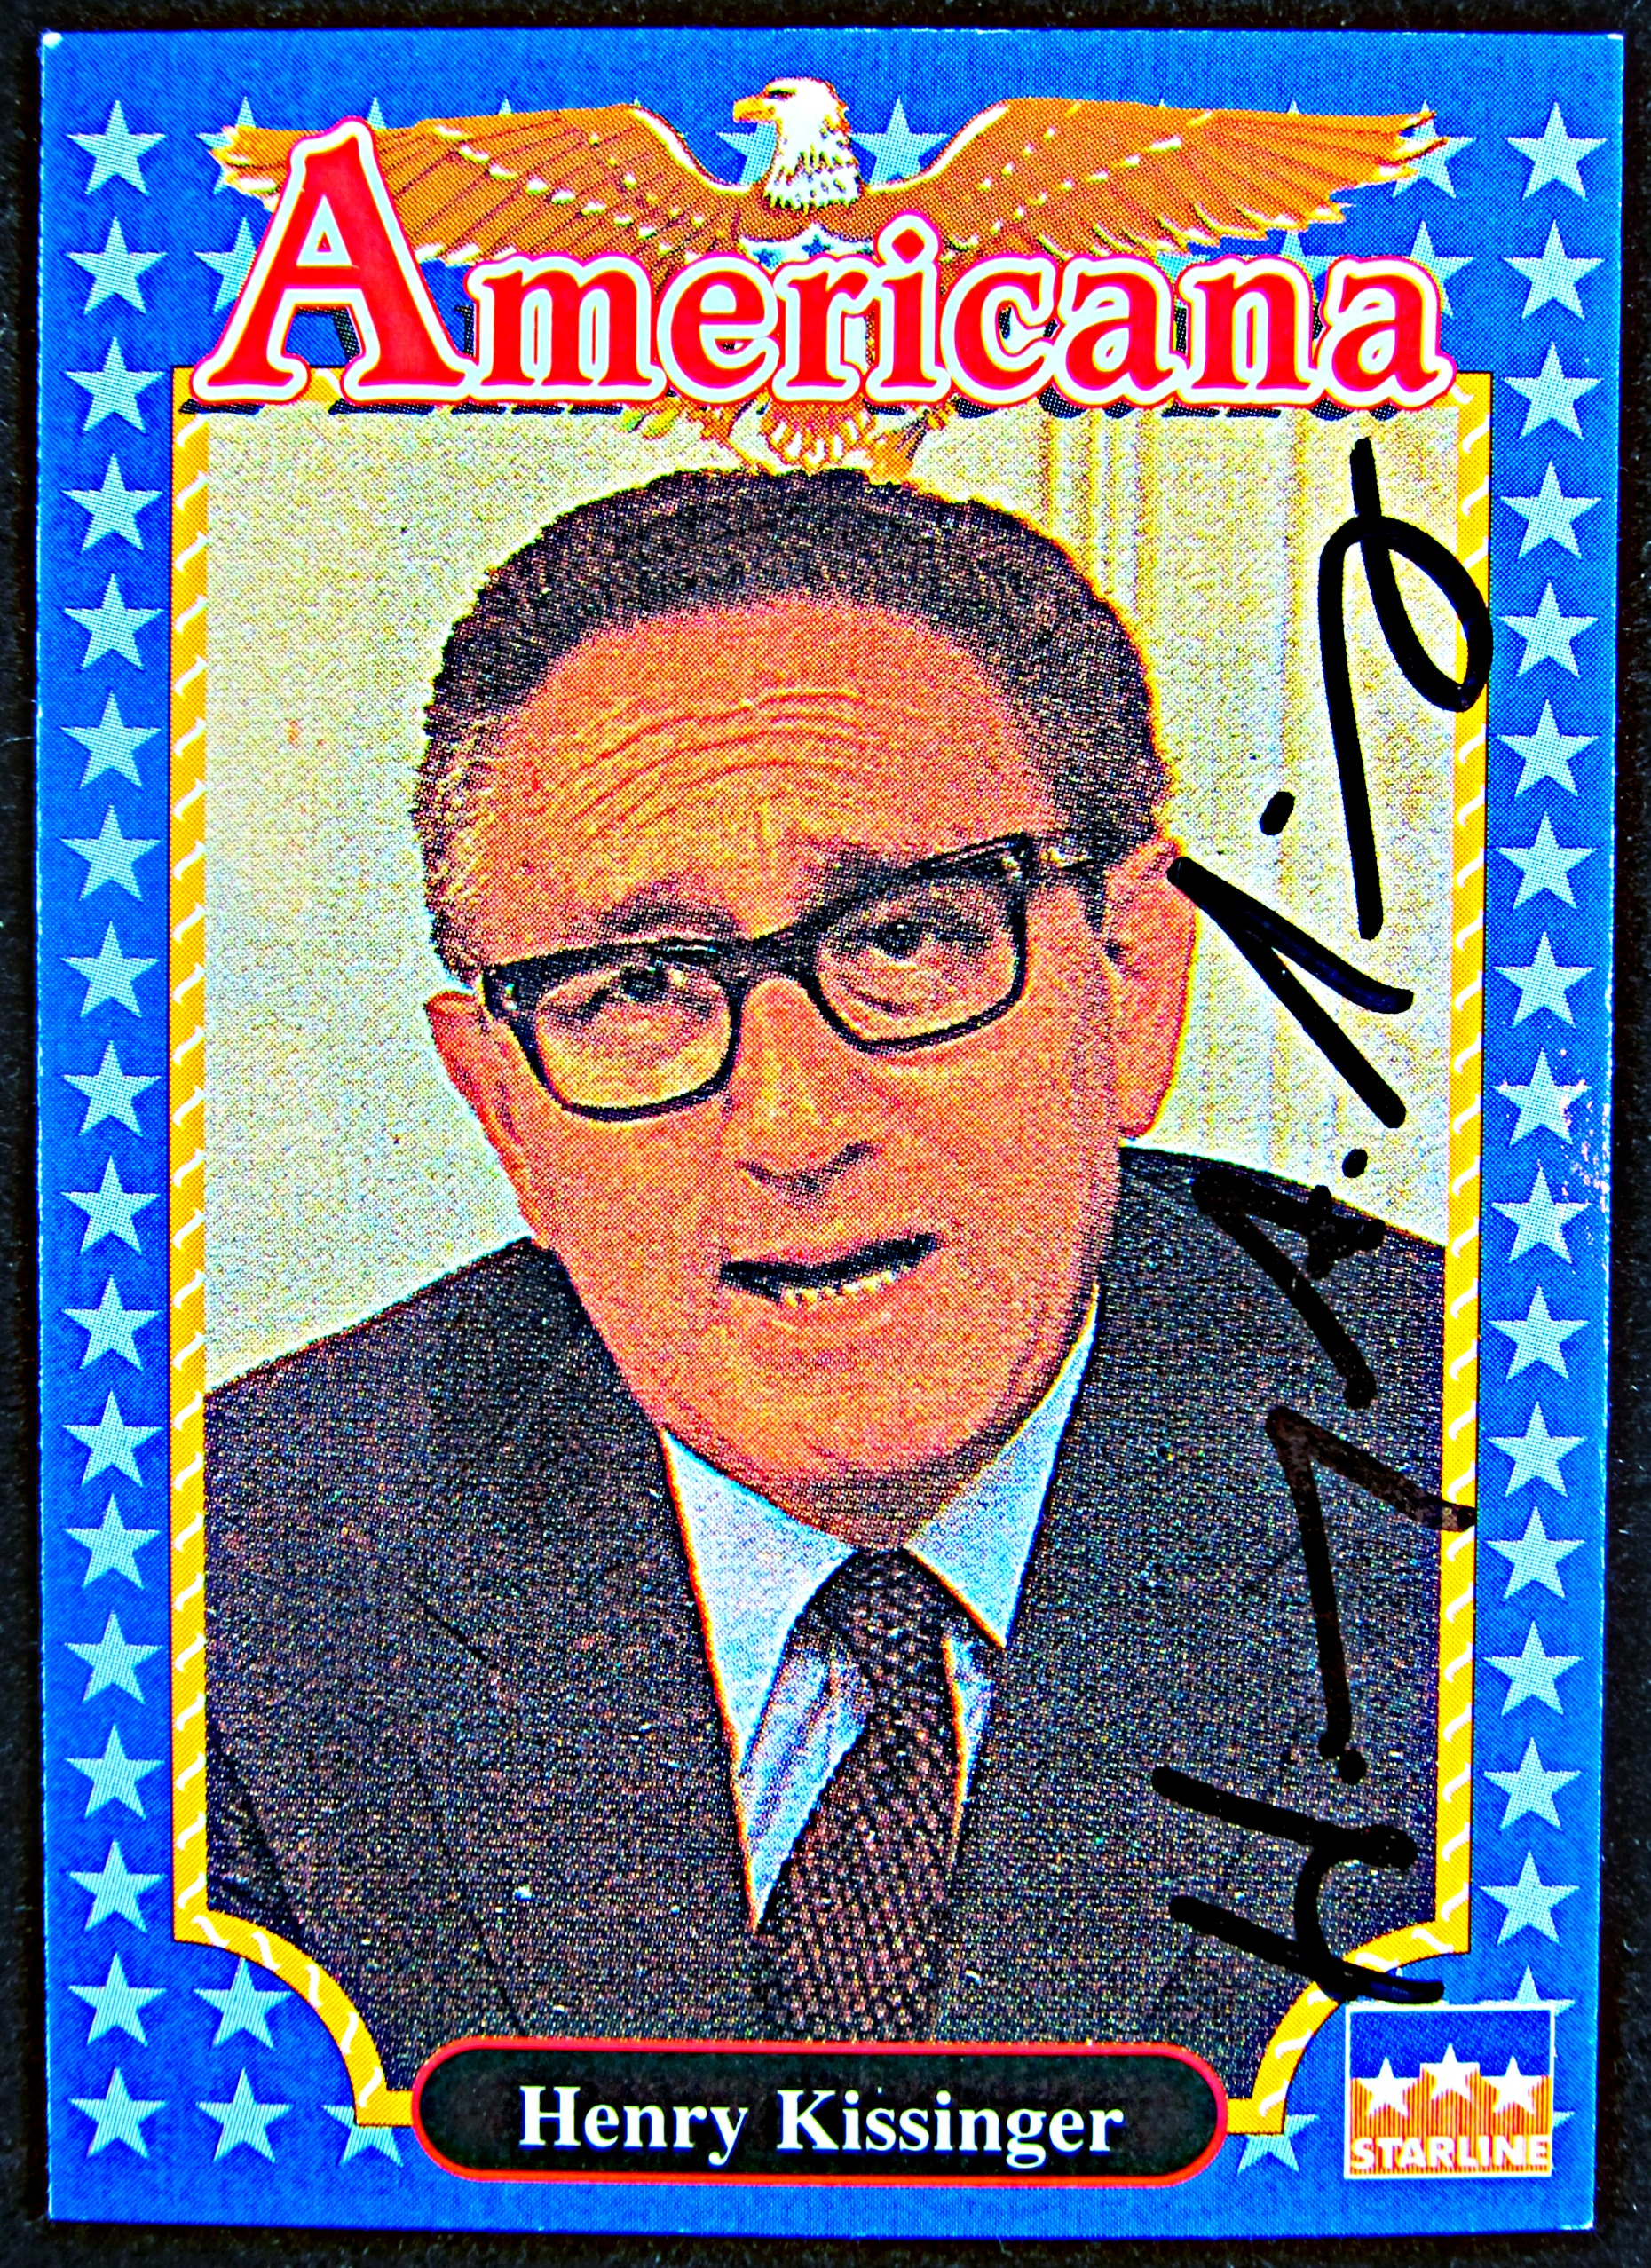 Henry Kissinger Autographed Card